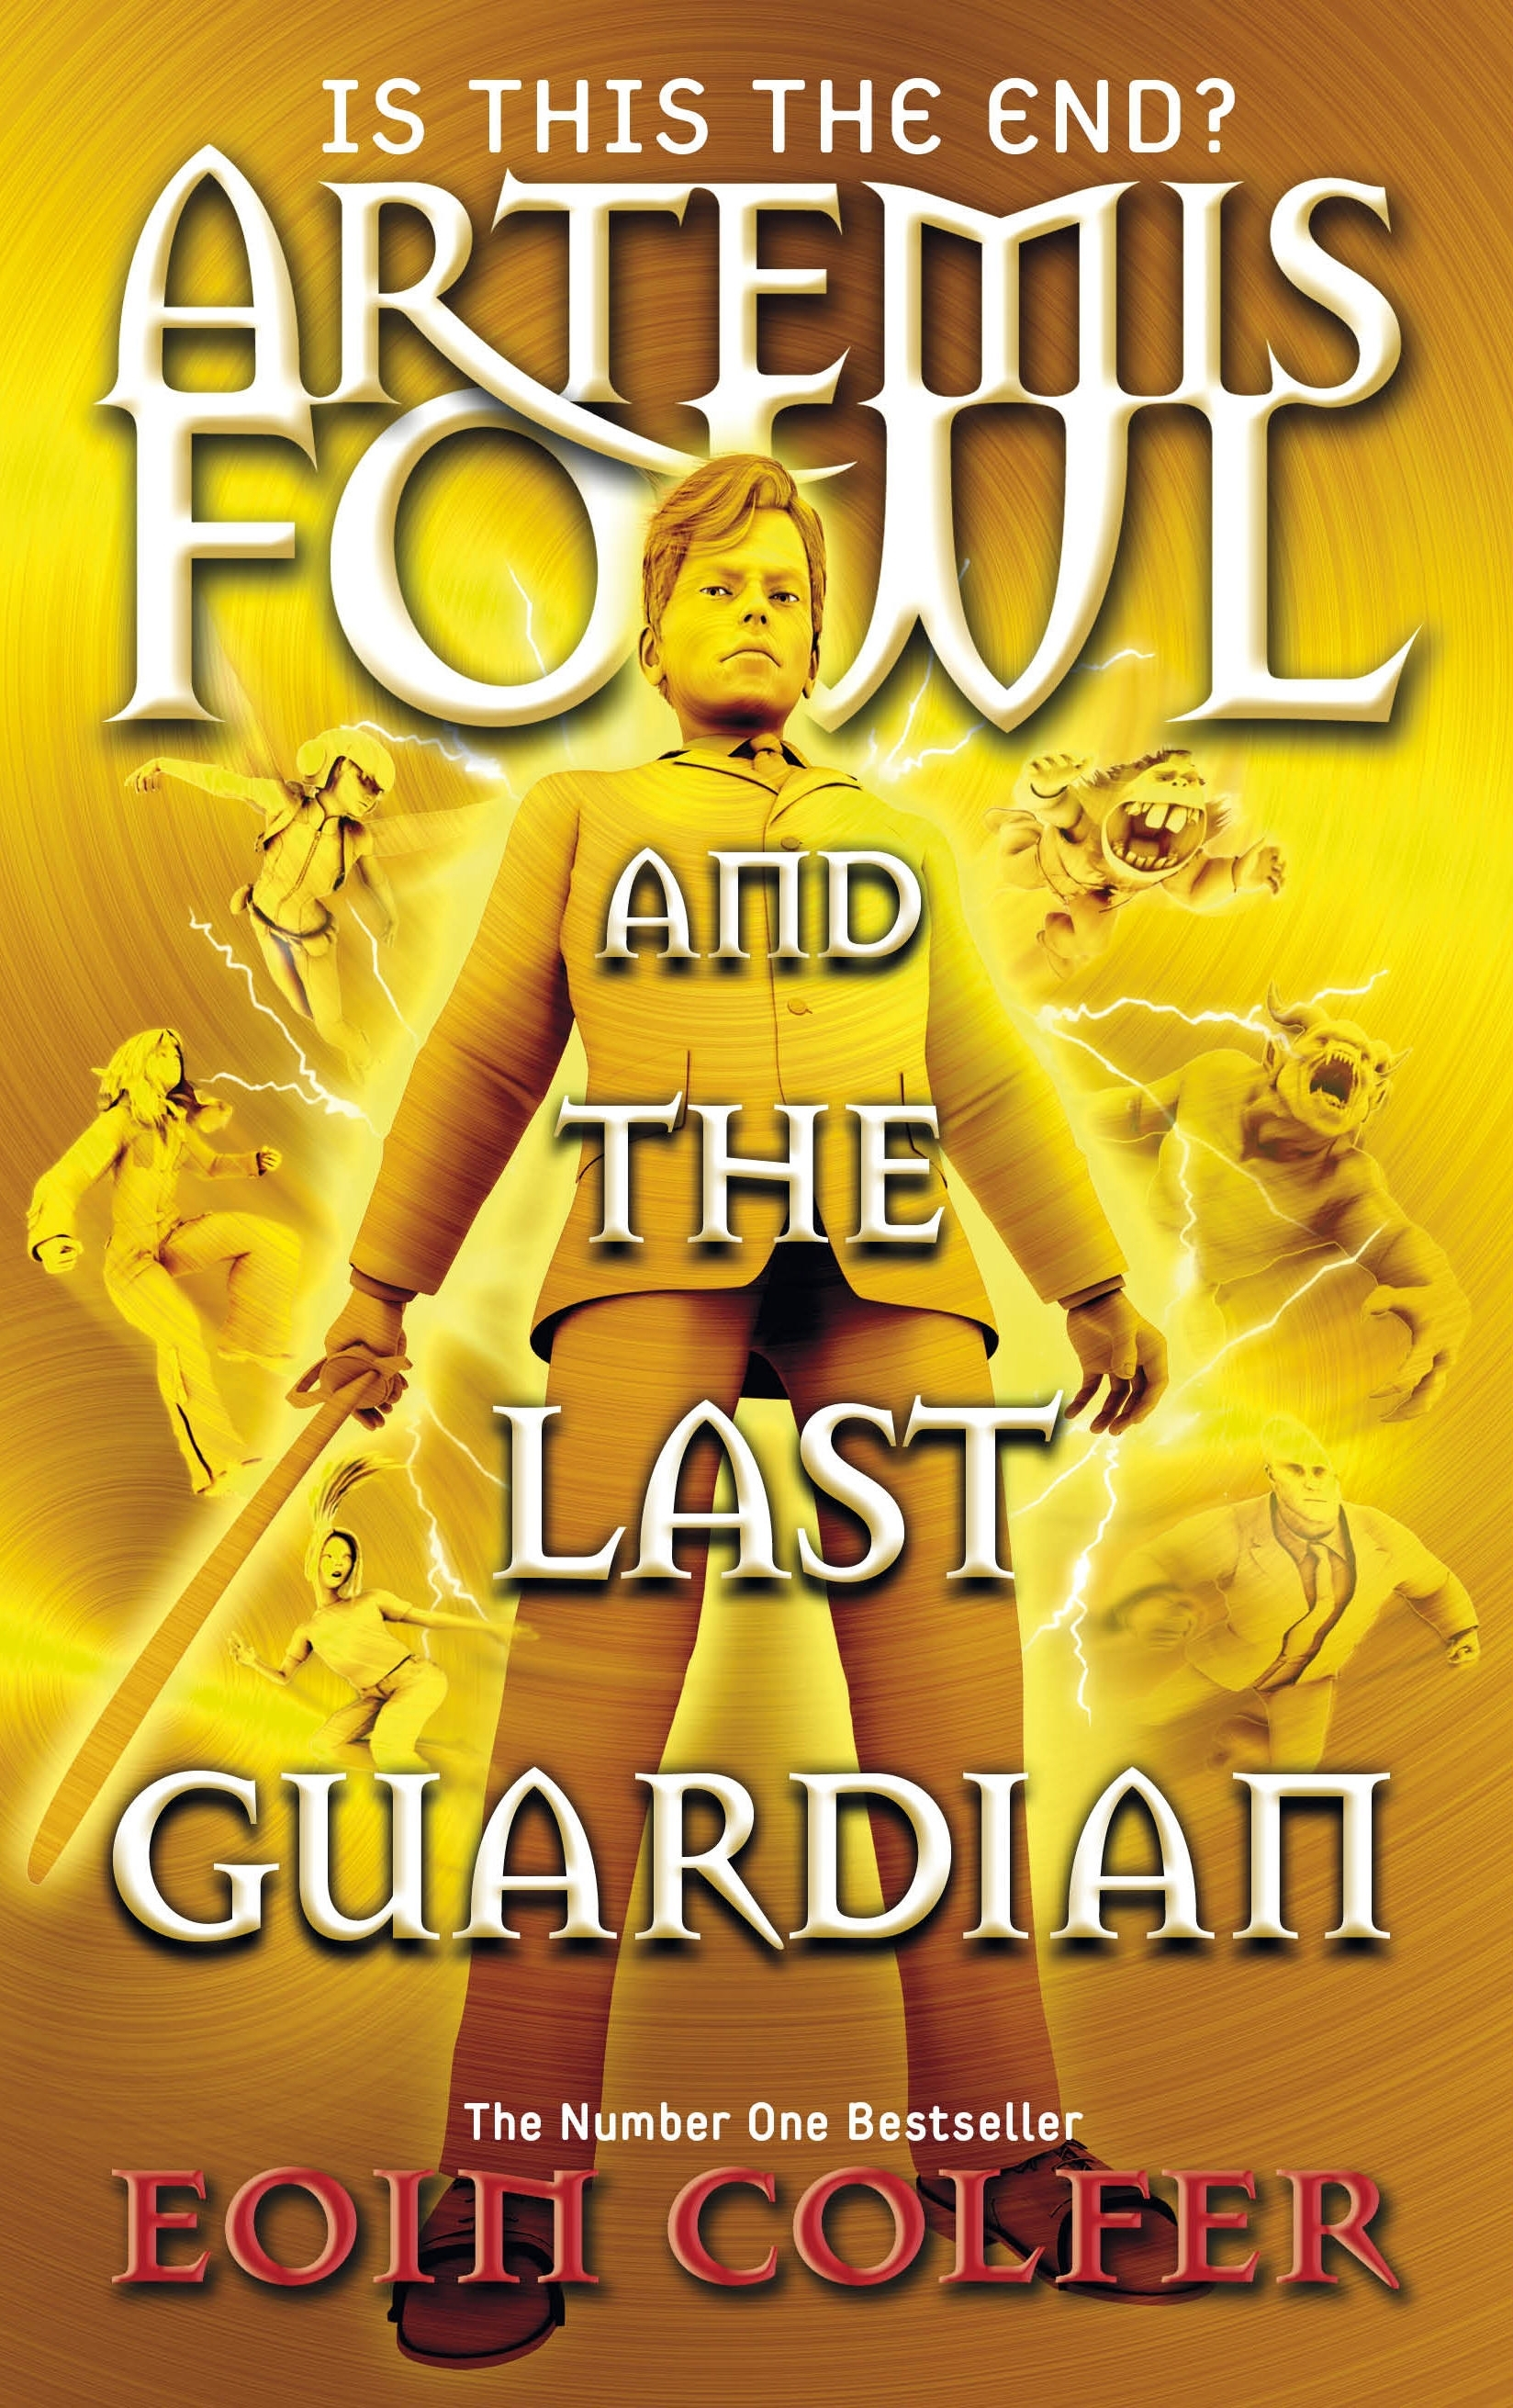 Artemis Fowl and the Last Guardian by Eoin Colfer  Review by Nalini Haynes